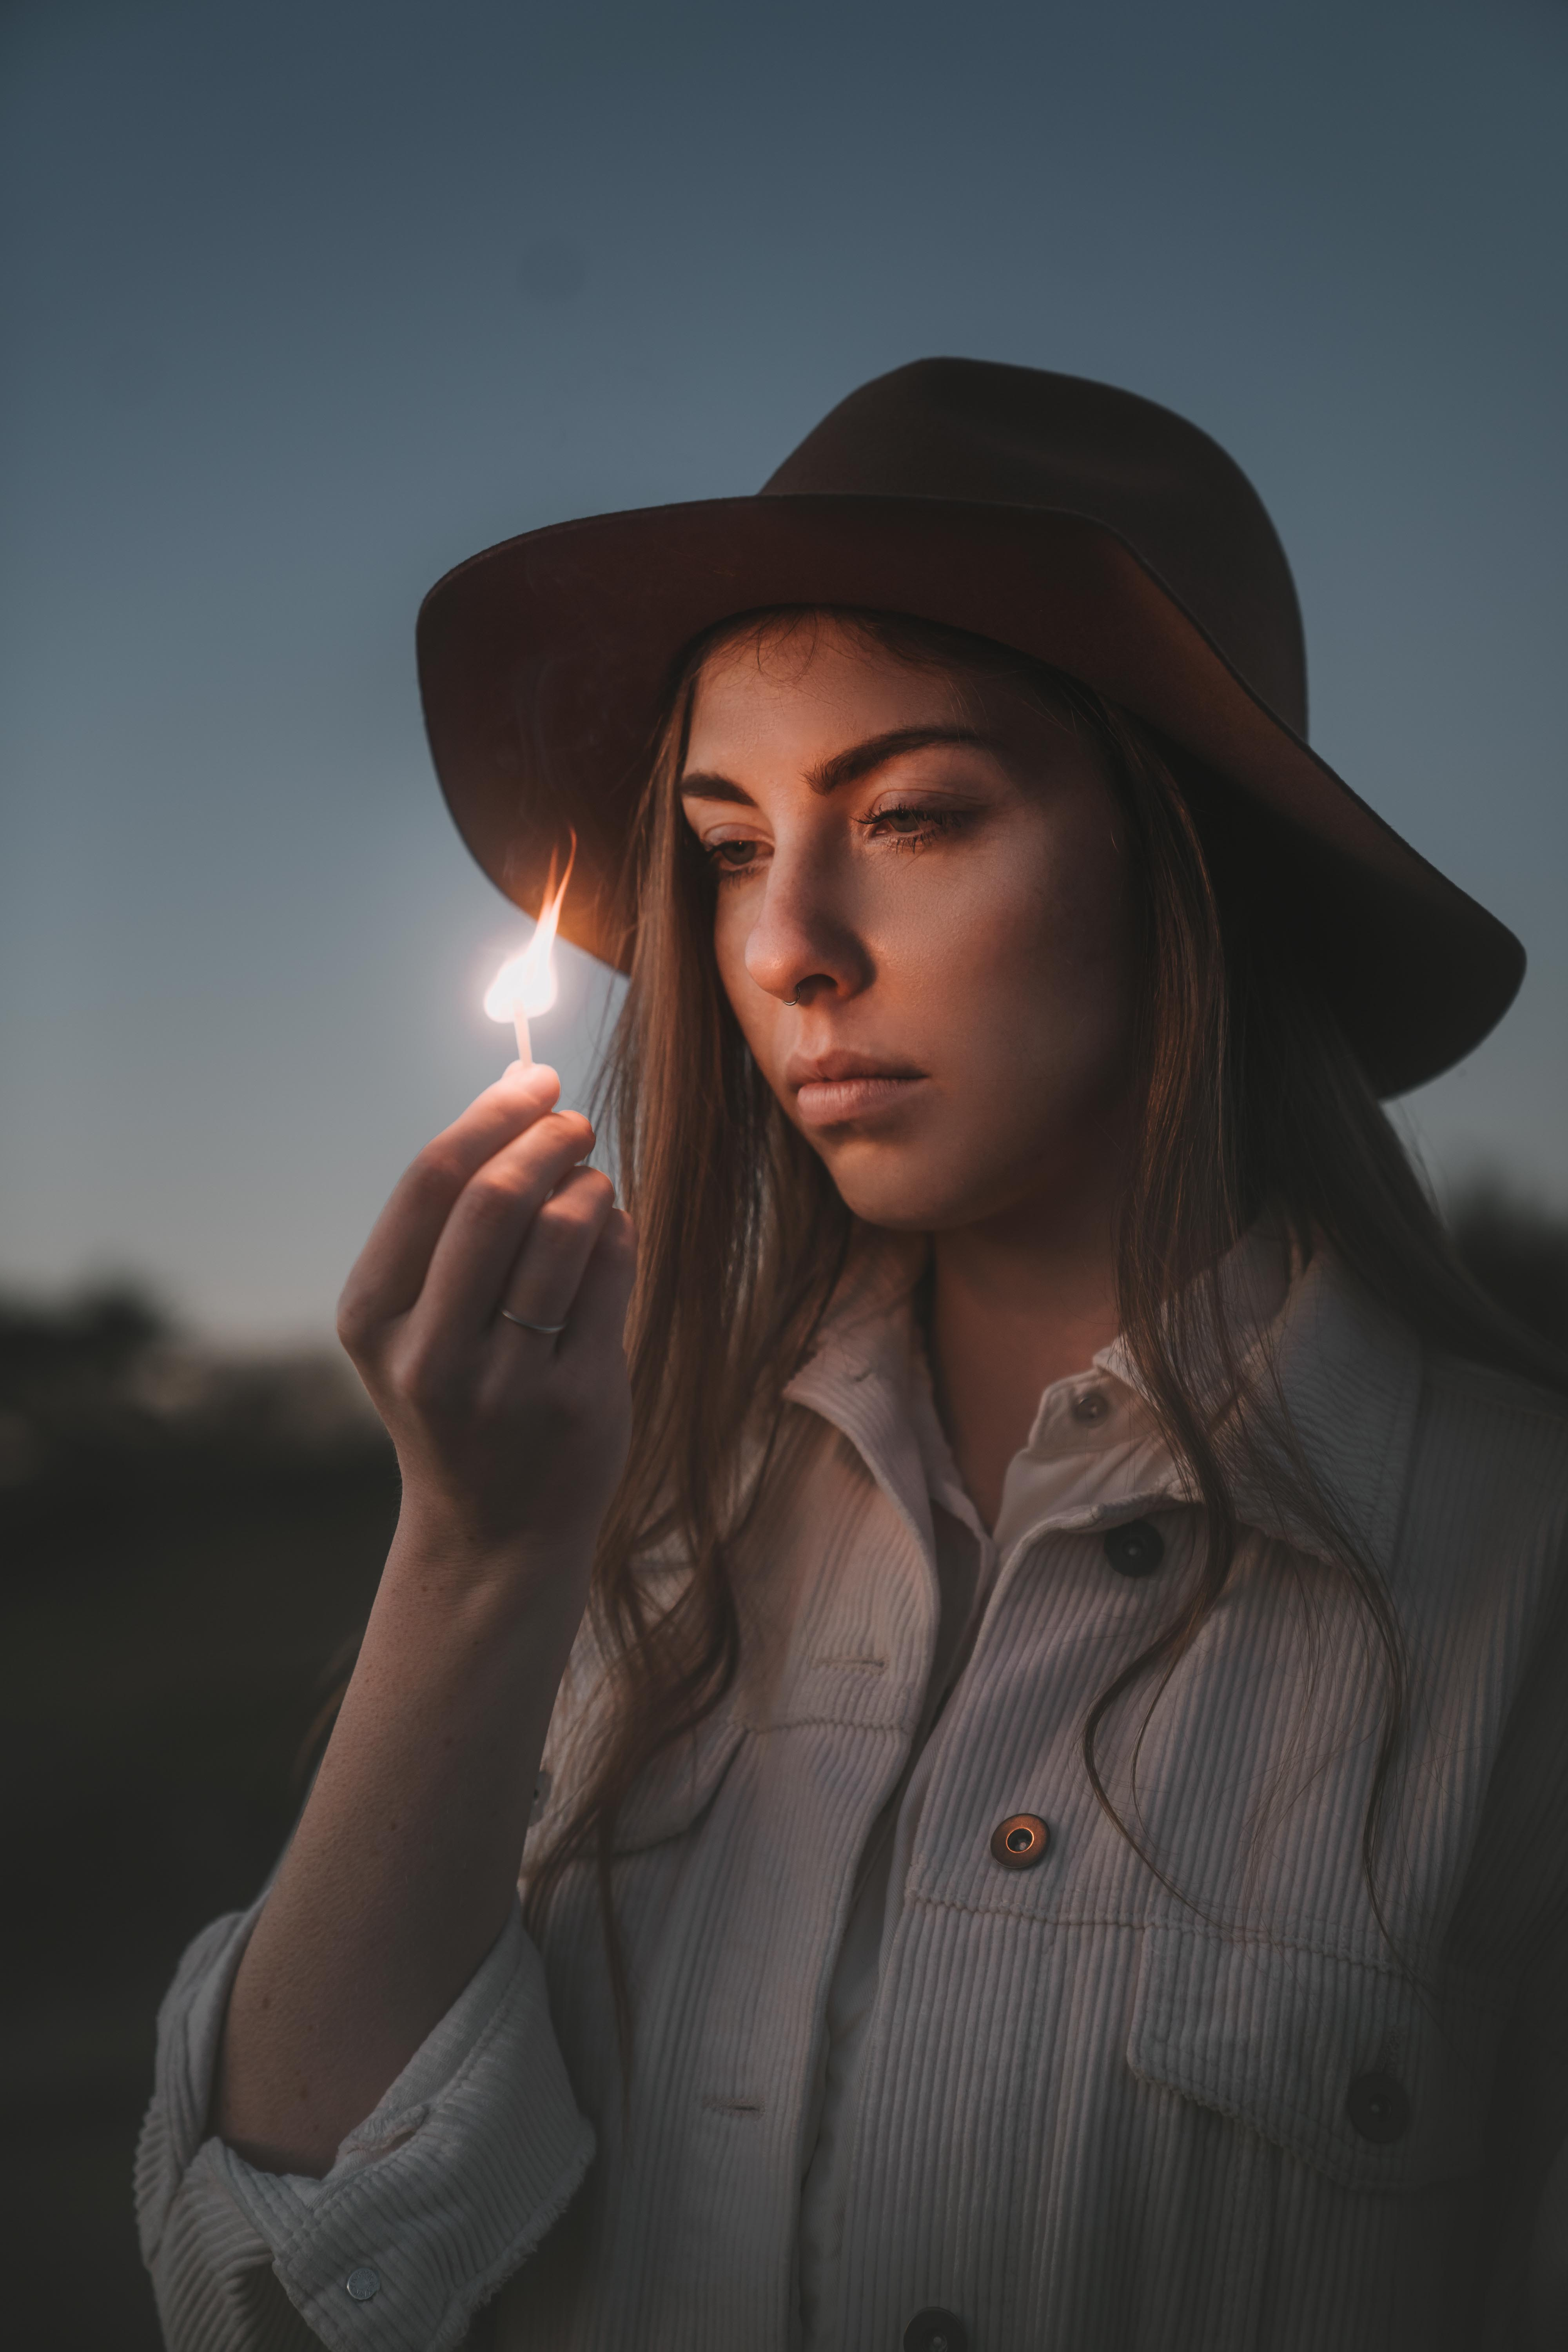 Woman with hat looking into a burning match while it is dark outside